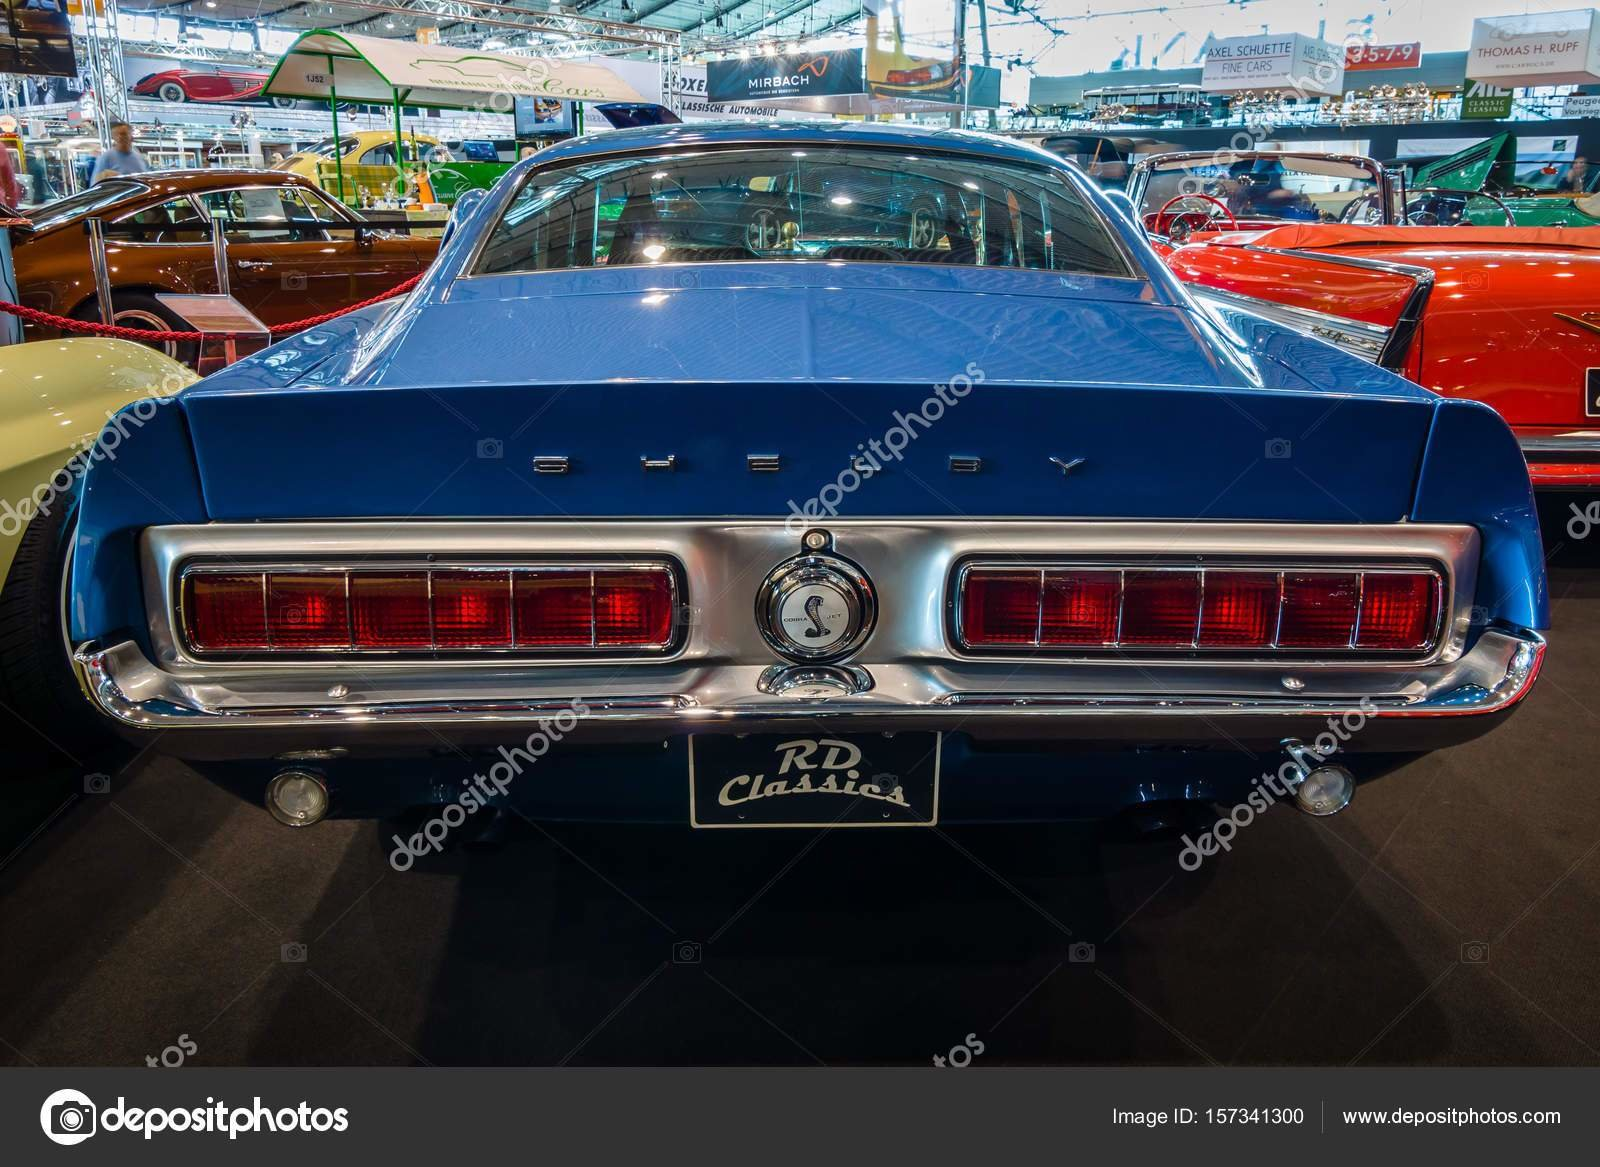 Latest Muscle Car Ford Mustang Shelby Gt500Kr 1968 – Stock Free Download